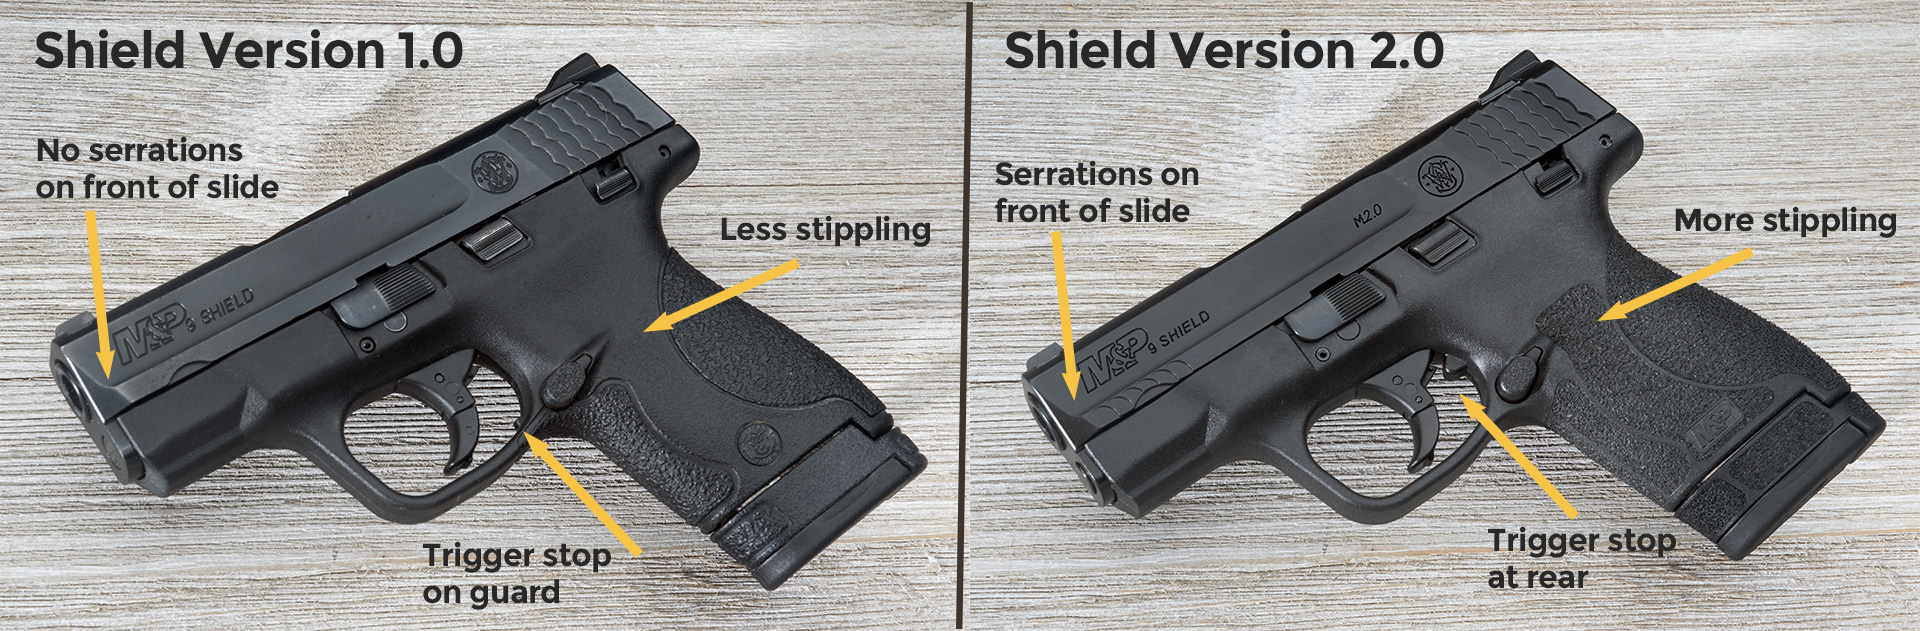 Comparing features on the Shield 1.0 versus Shield 2.0